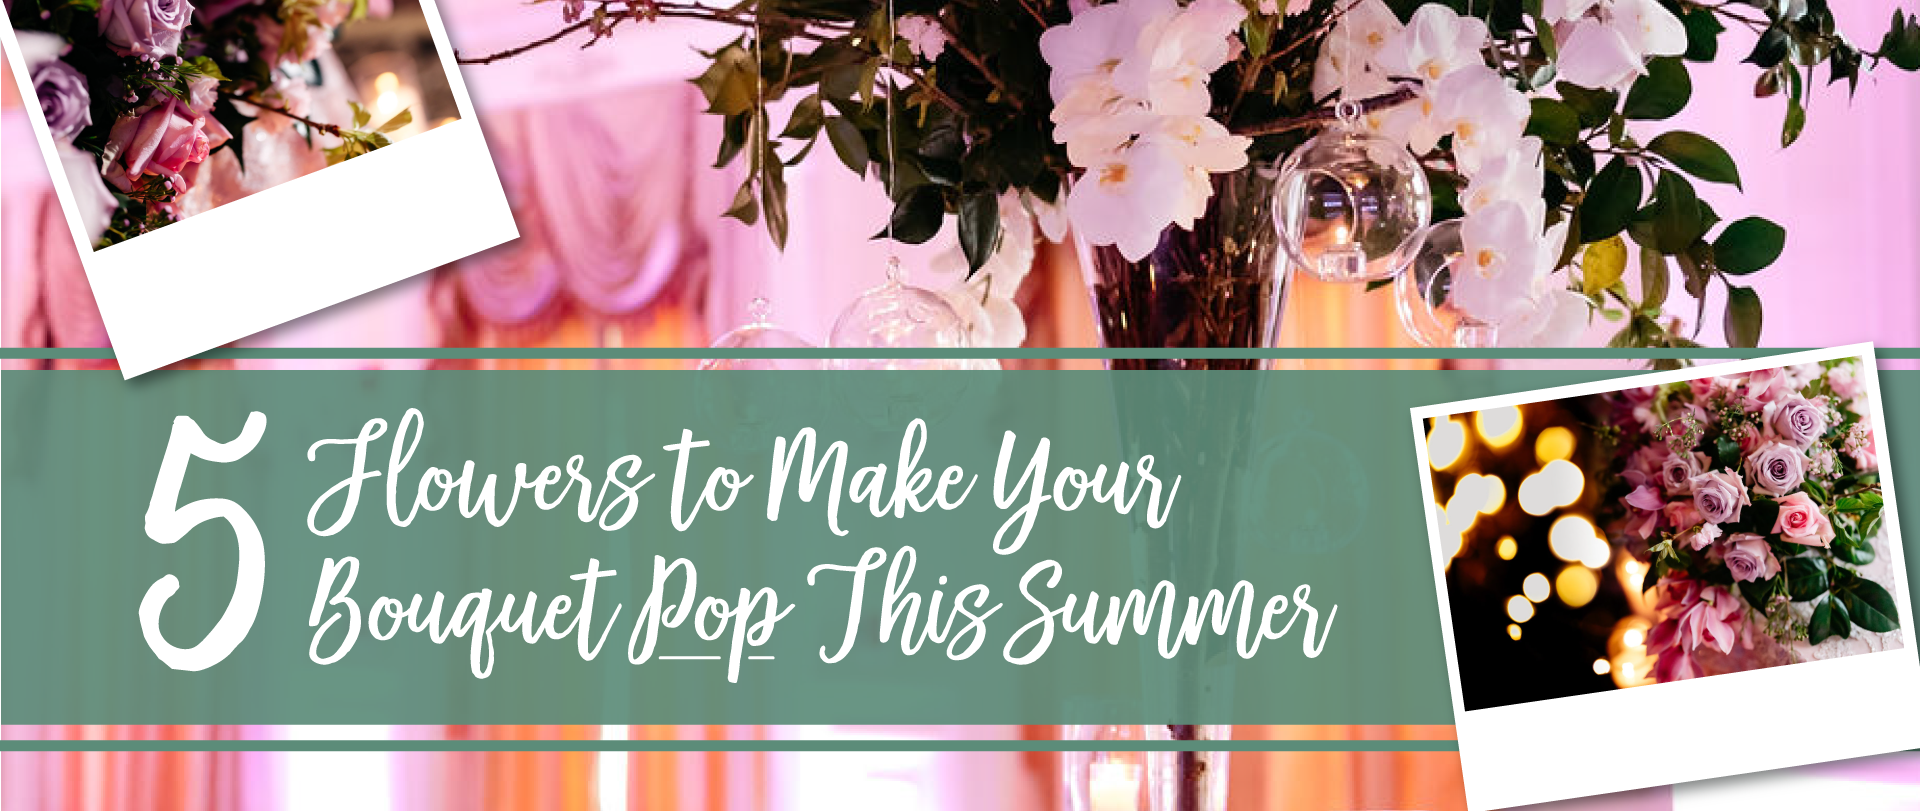 5 Flowers to Make Your Bouquet Pop This Summer